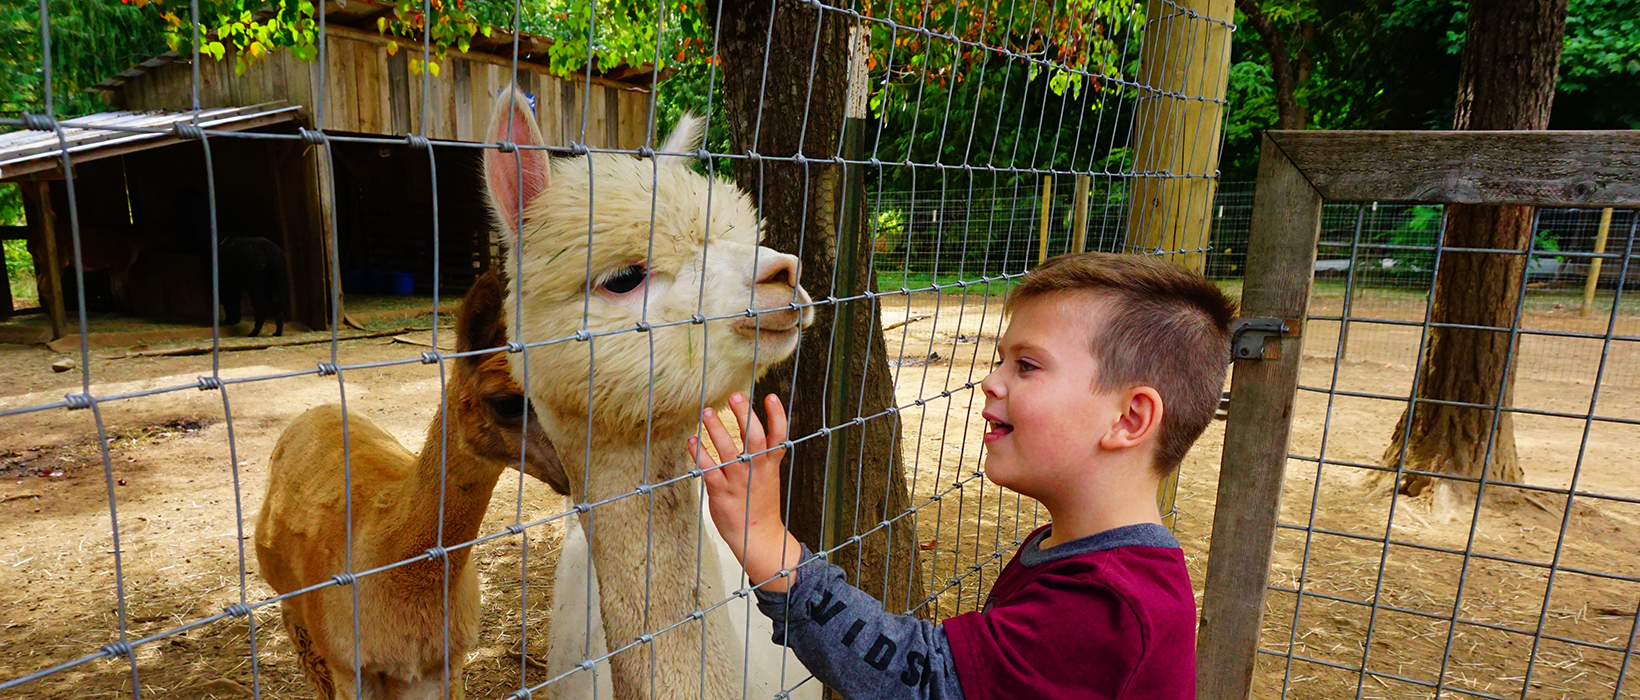 A young boy engages in a day of family fun petting an alpaca at an alpaca farm